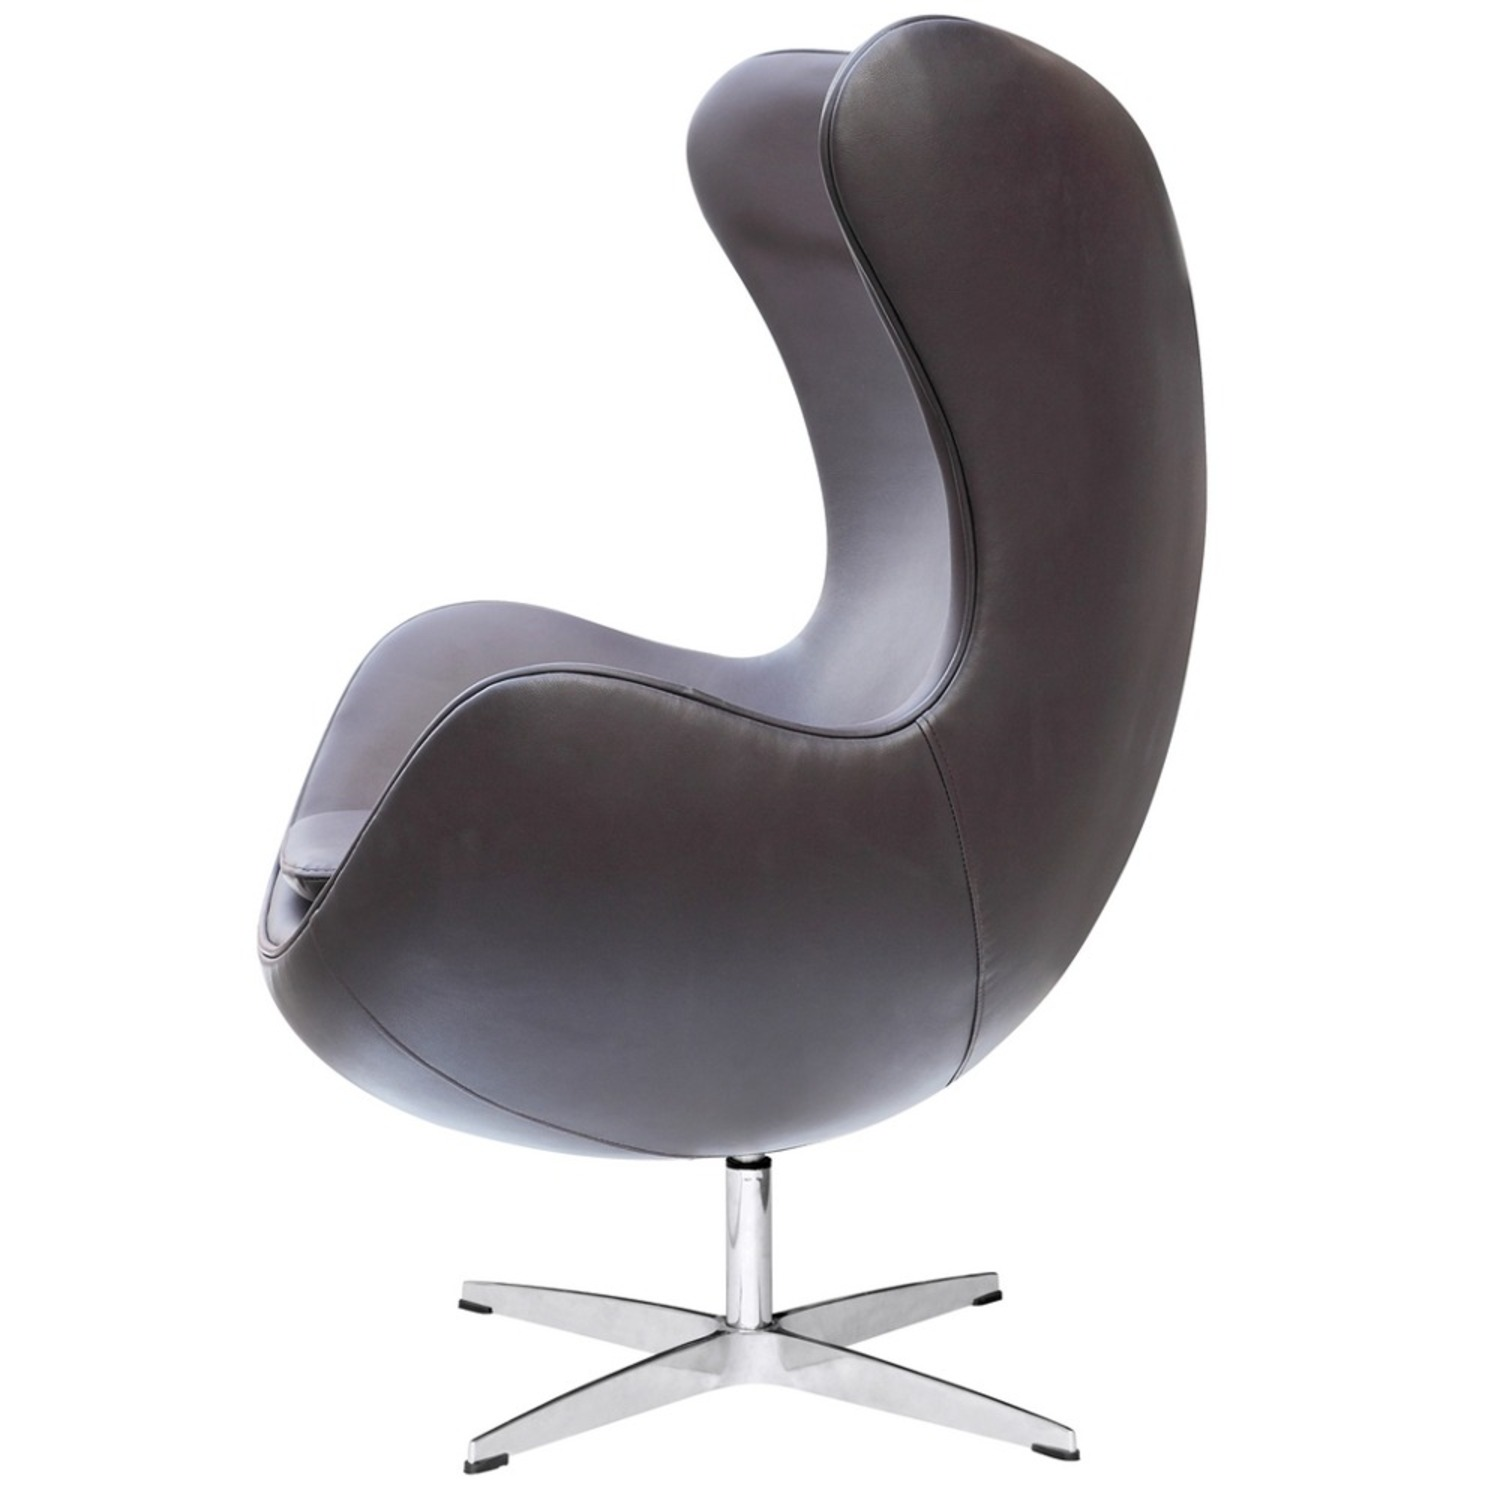 Inner Chair In Brown Leather W/ Fiberglass Frame - image-3